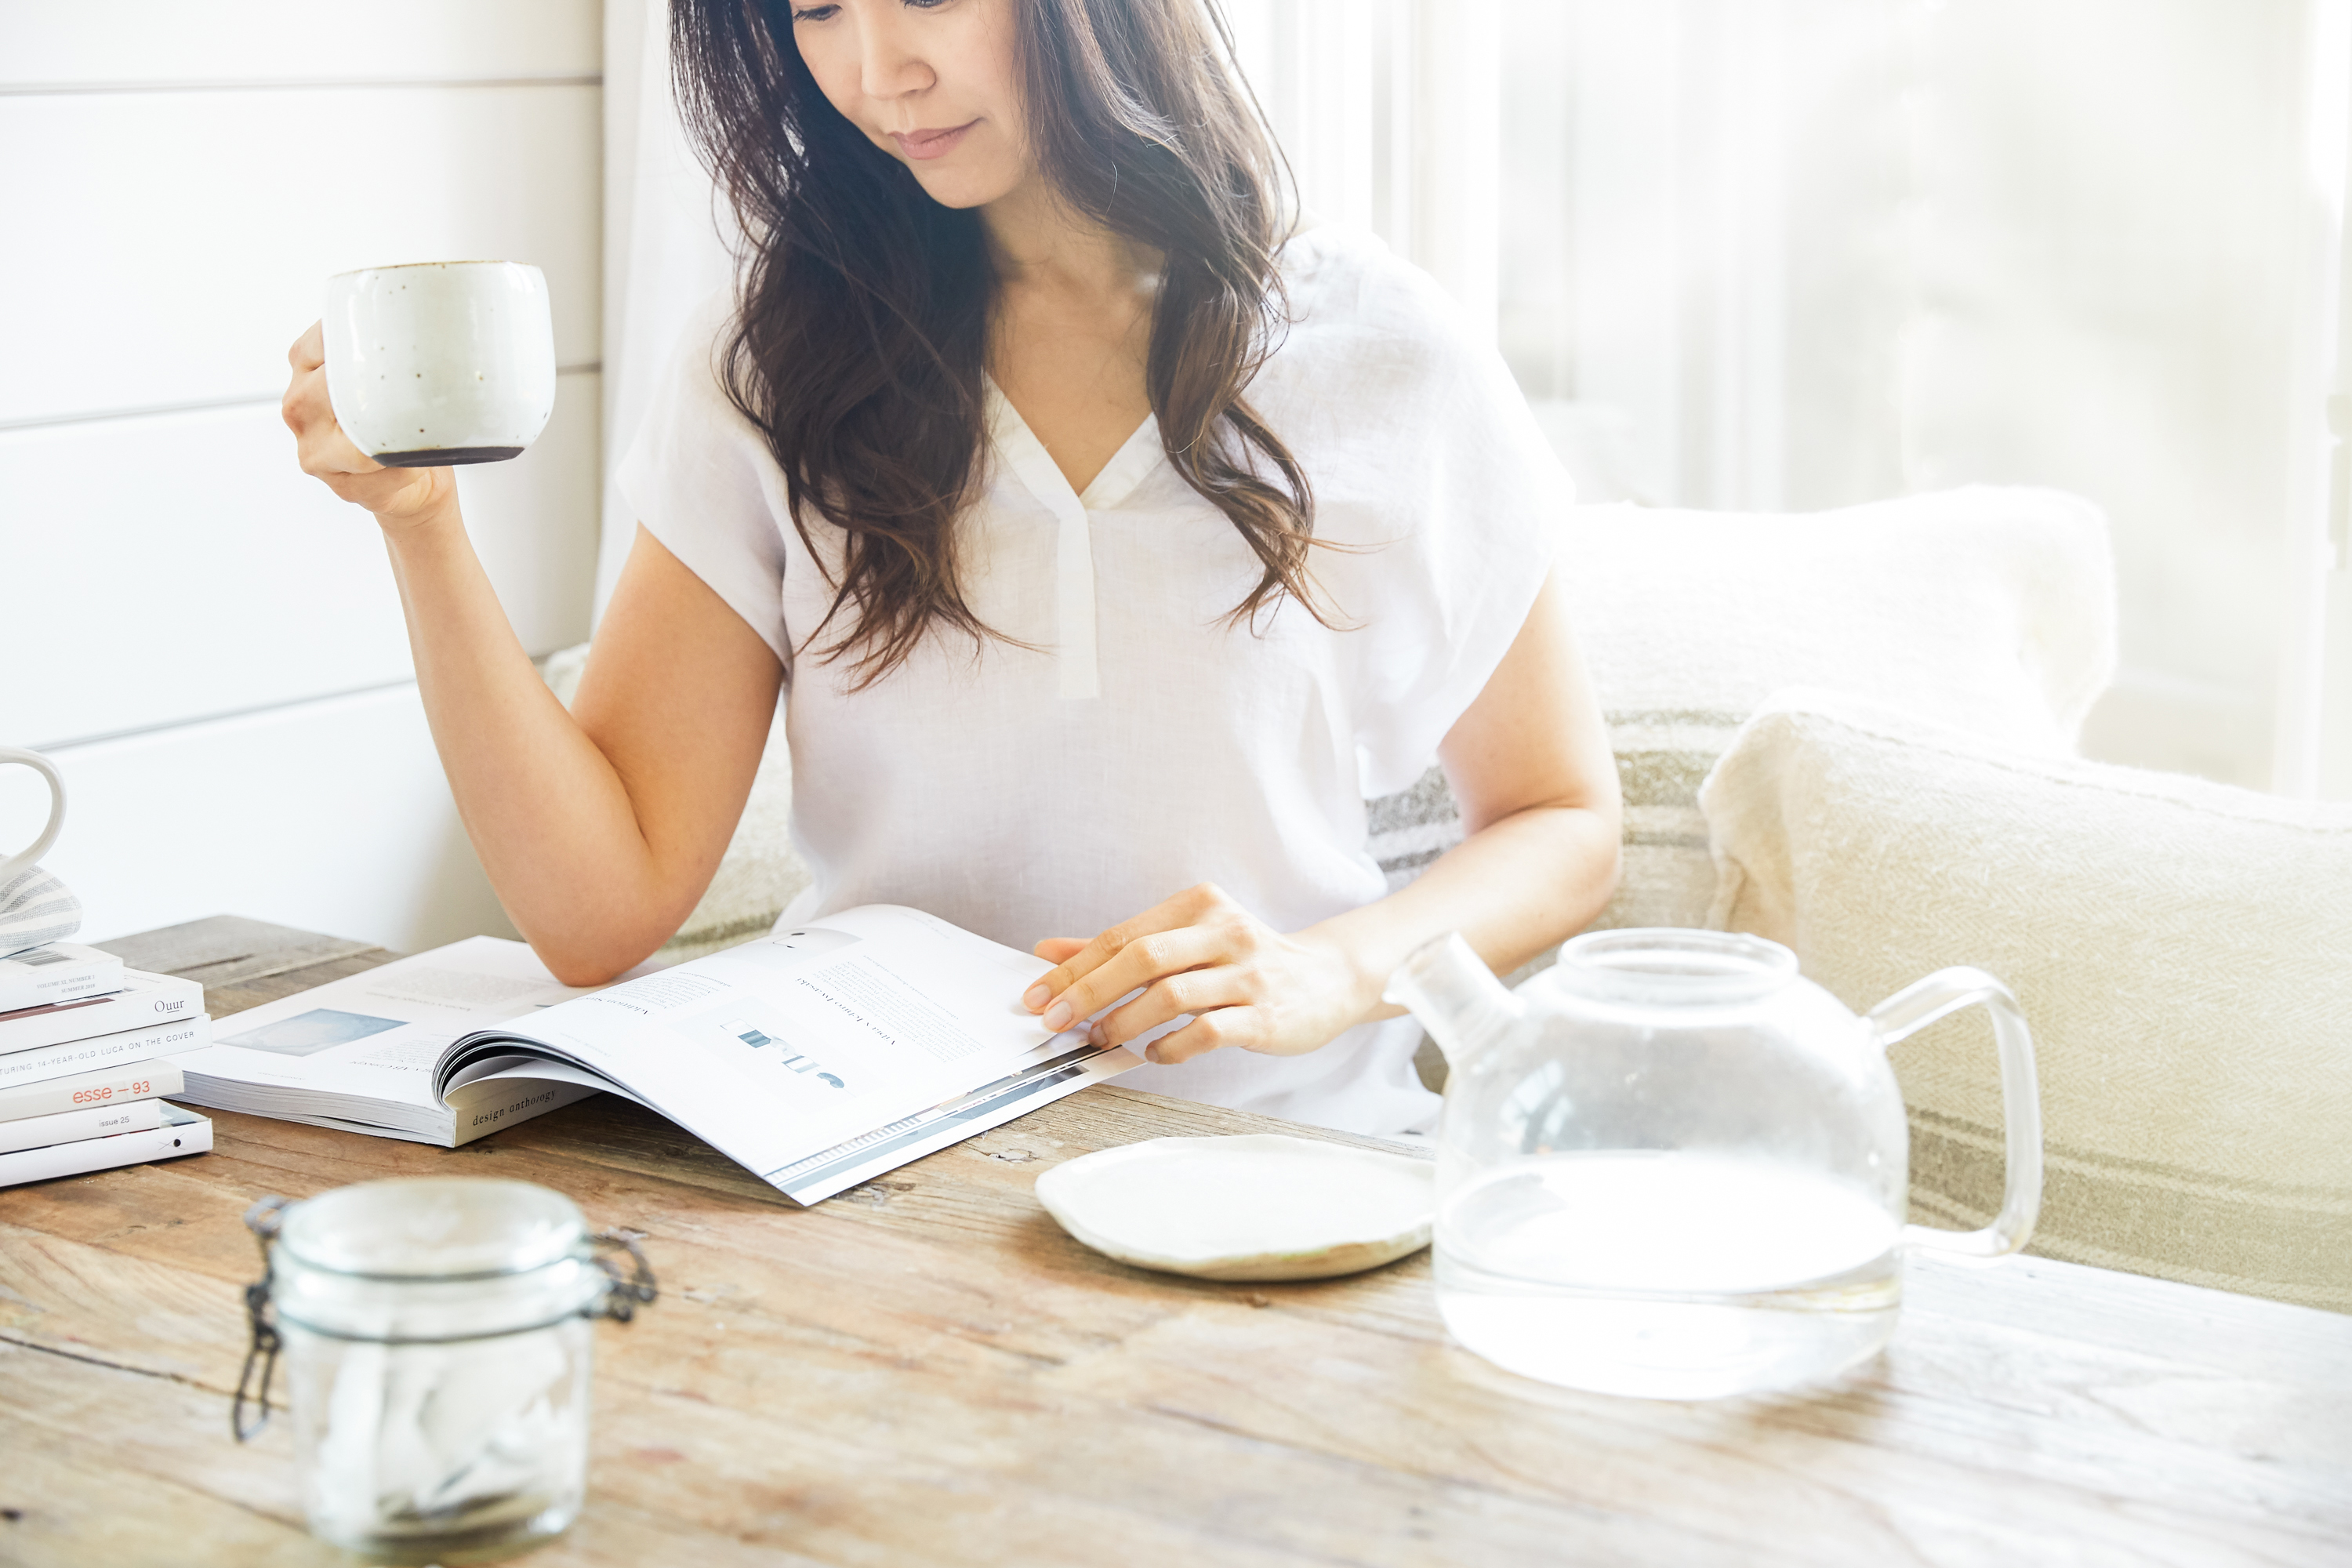 woman reading a book with a mug of coffee